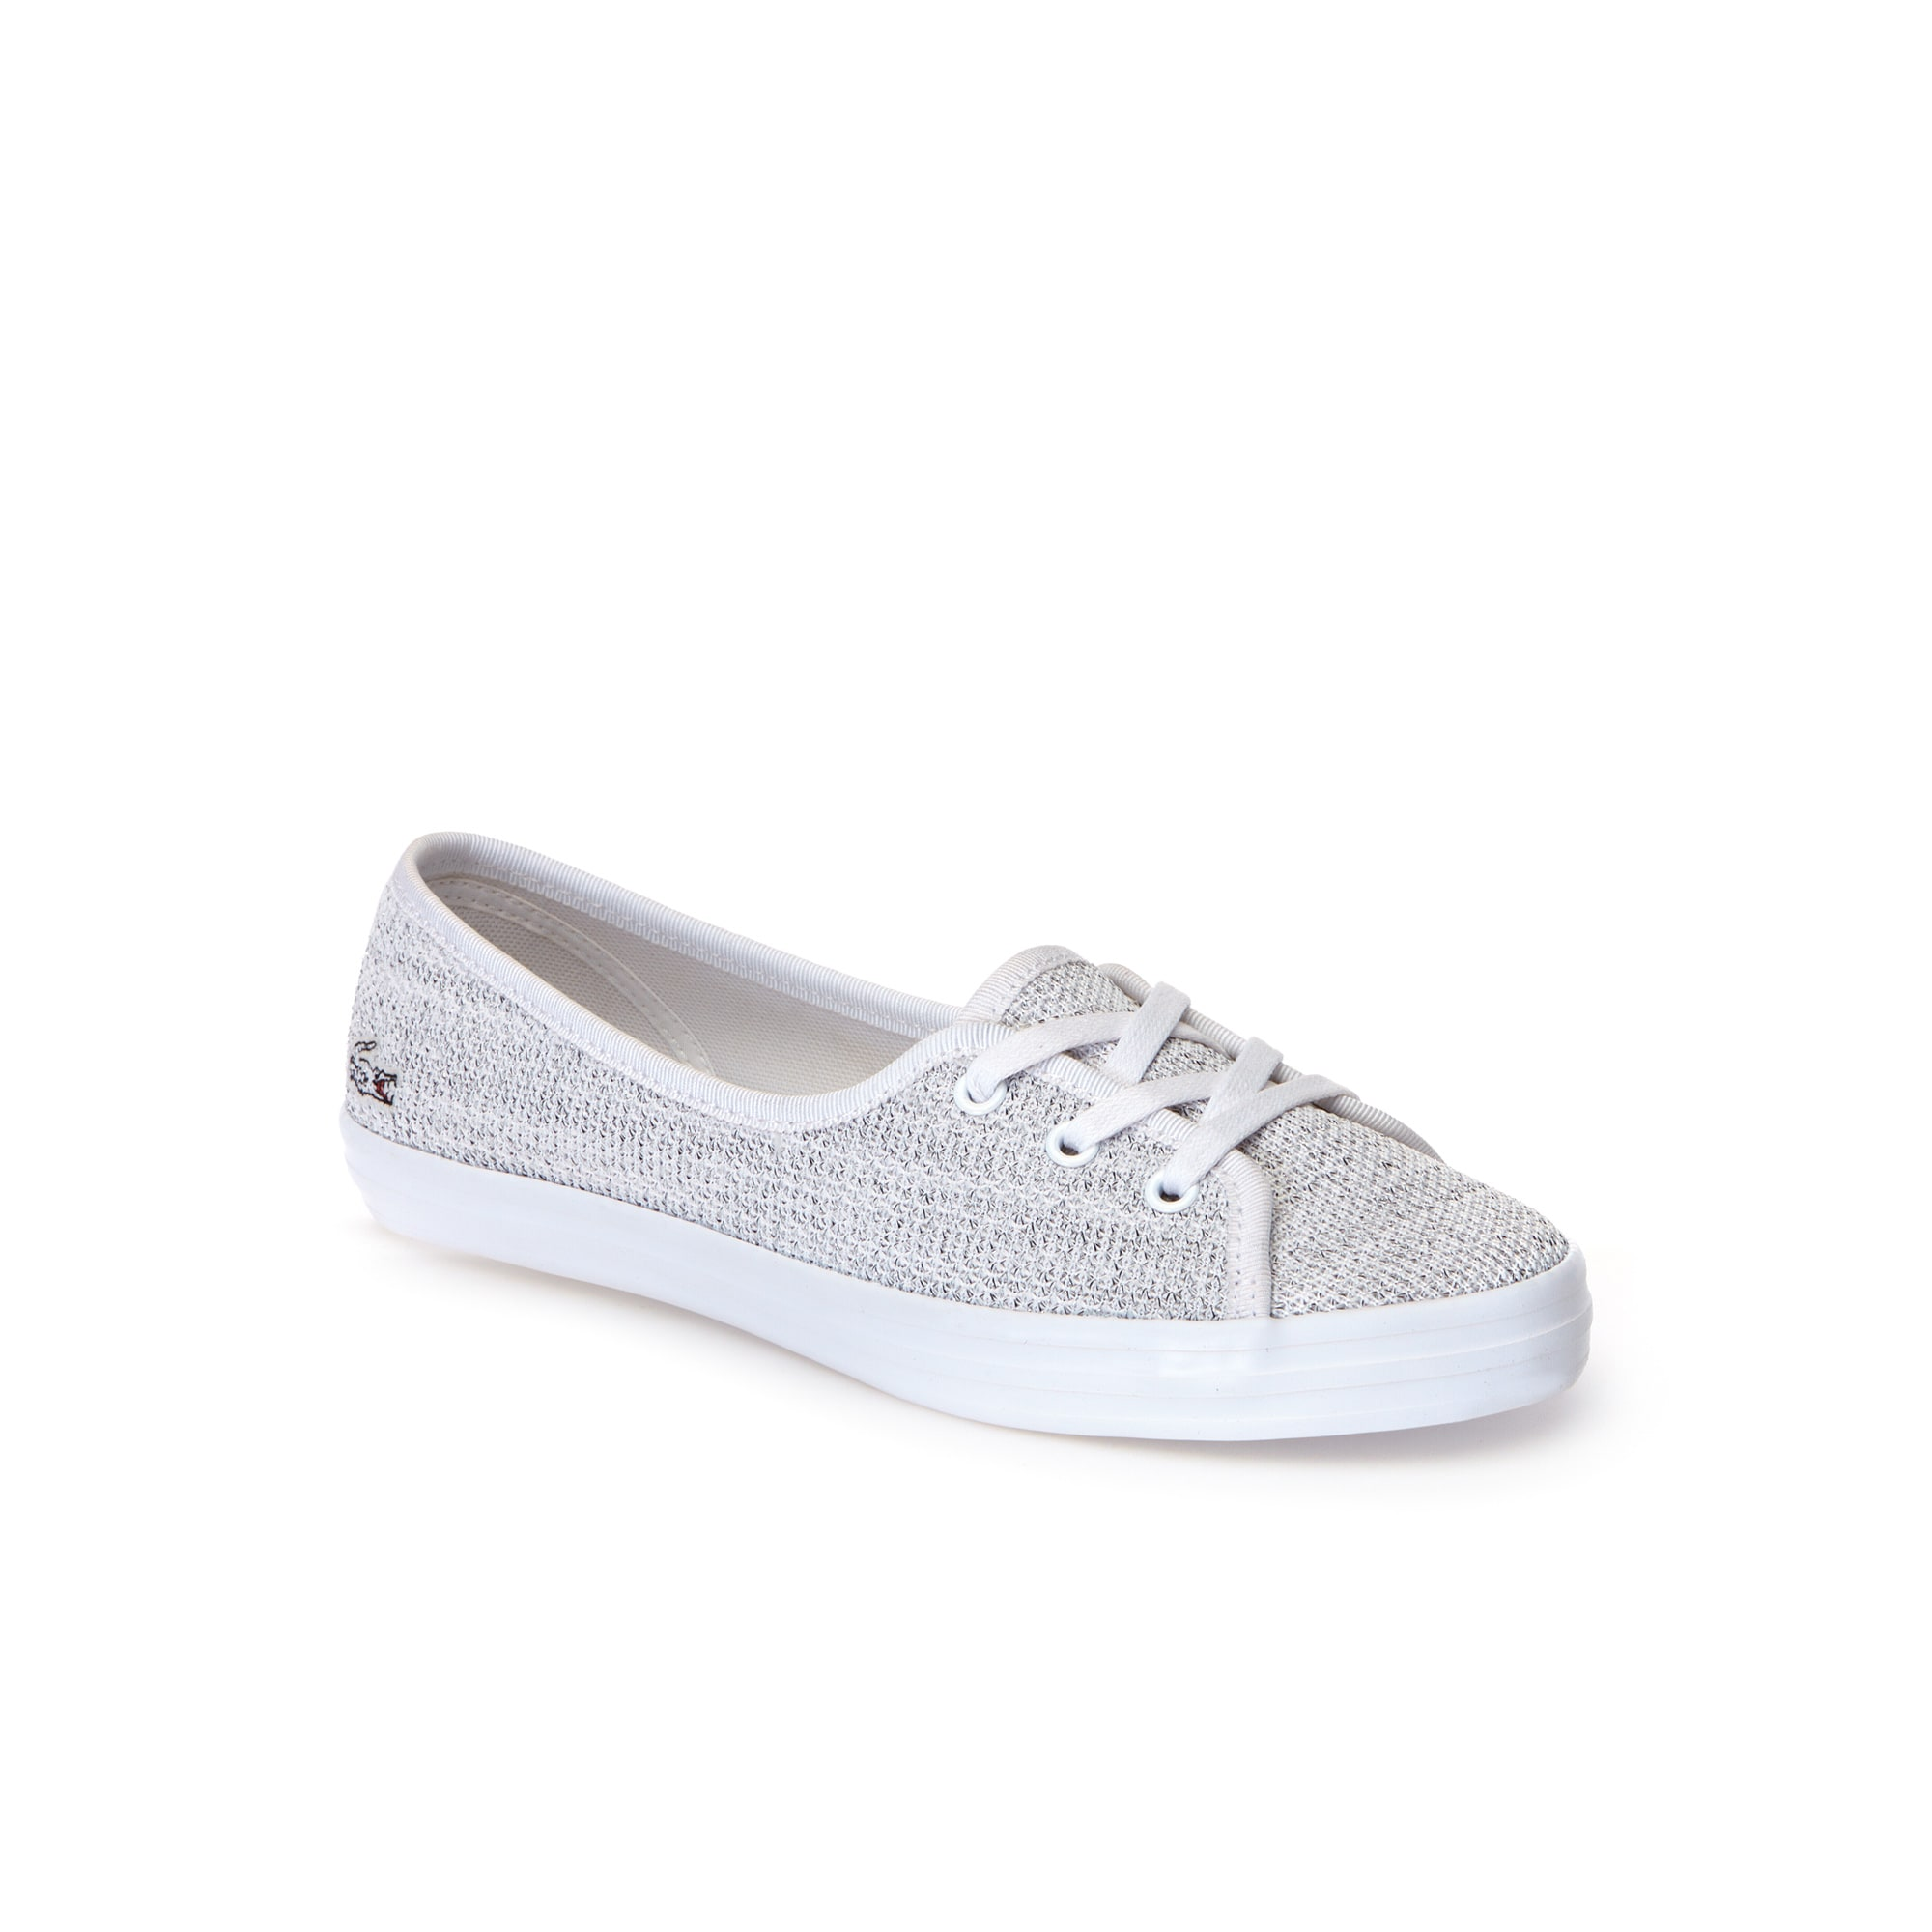 Women's Ziane Chunky Metallic Flecked Trainers